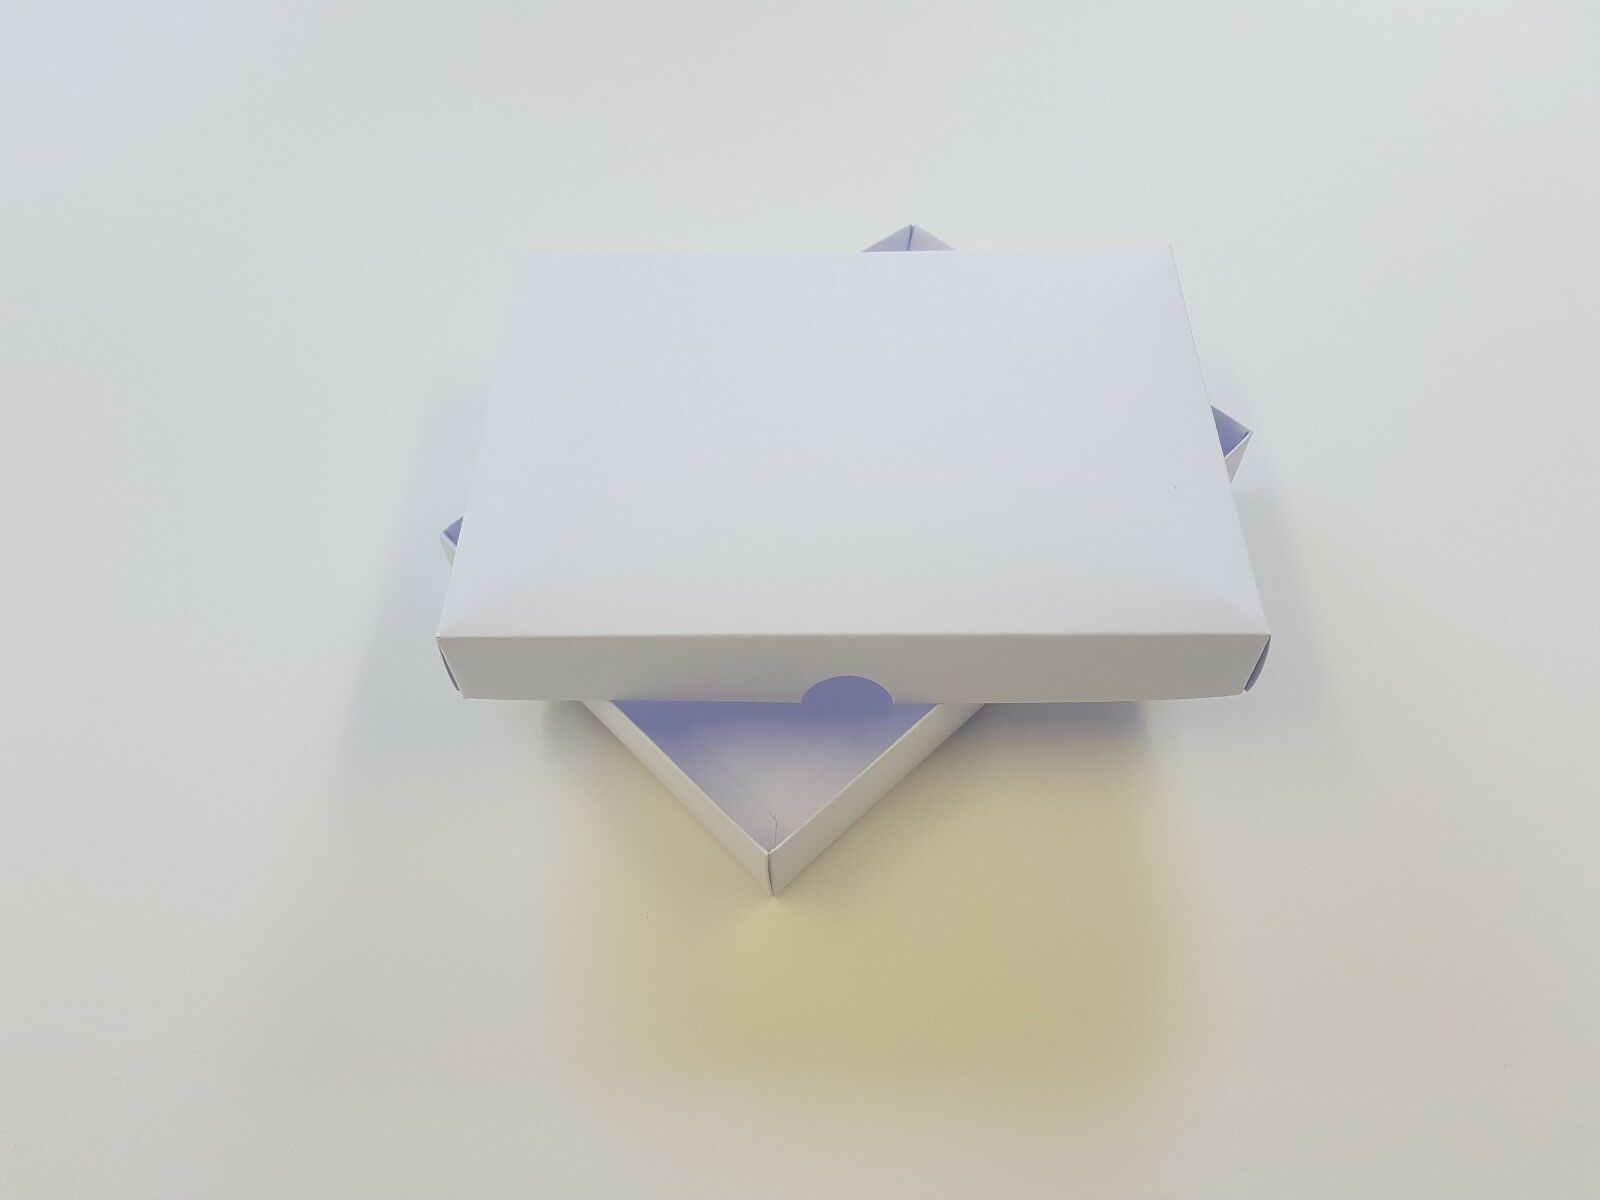 100 x A5 Greeting Card Boxes, Gift Boxes, Weiß Boxboard, Free Delivery